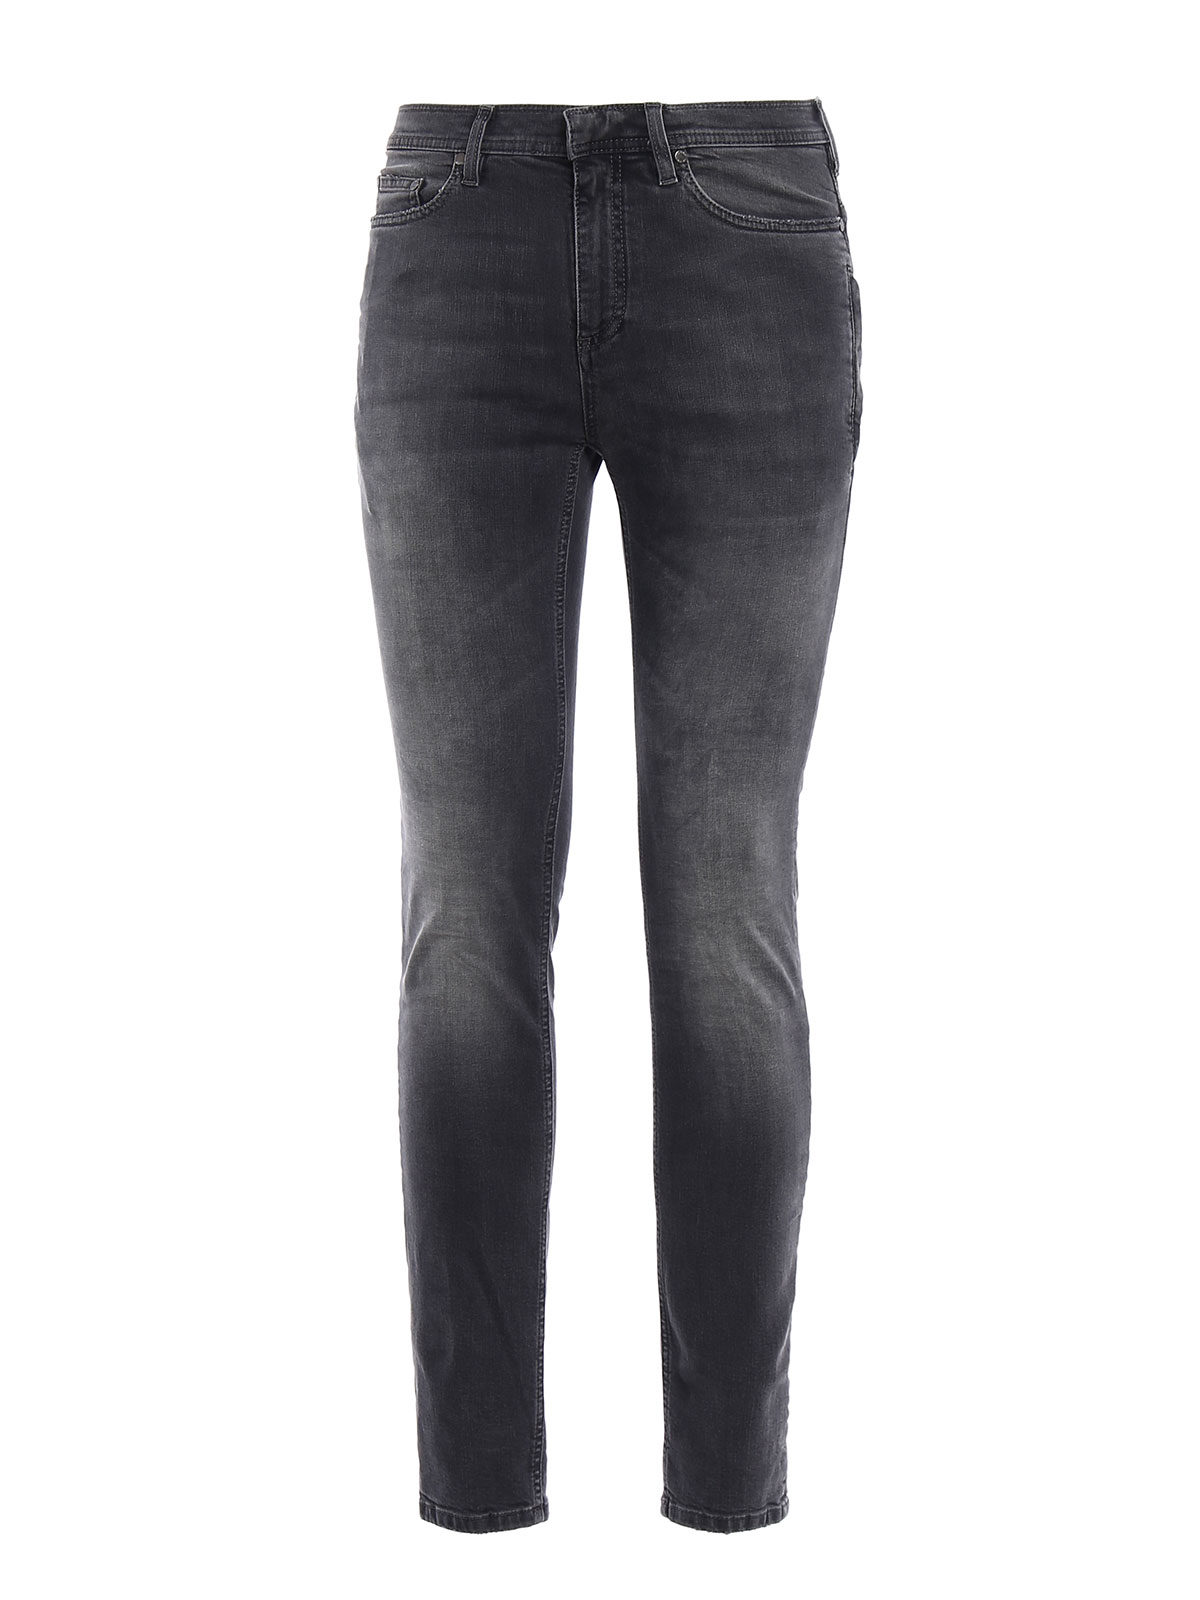 super skinny leg dyed denim jeans by neil barrett skinny. Black Bedroom Furniture Sets. Home Design Ideas